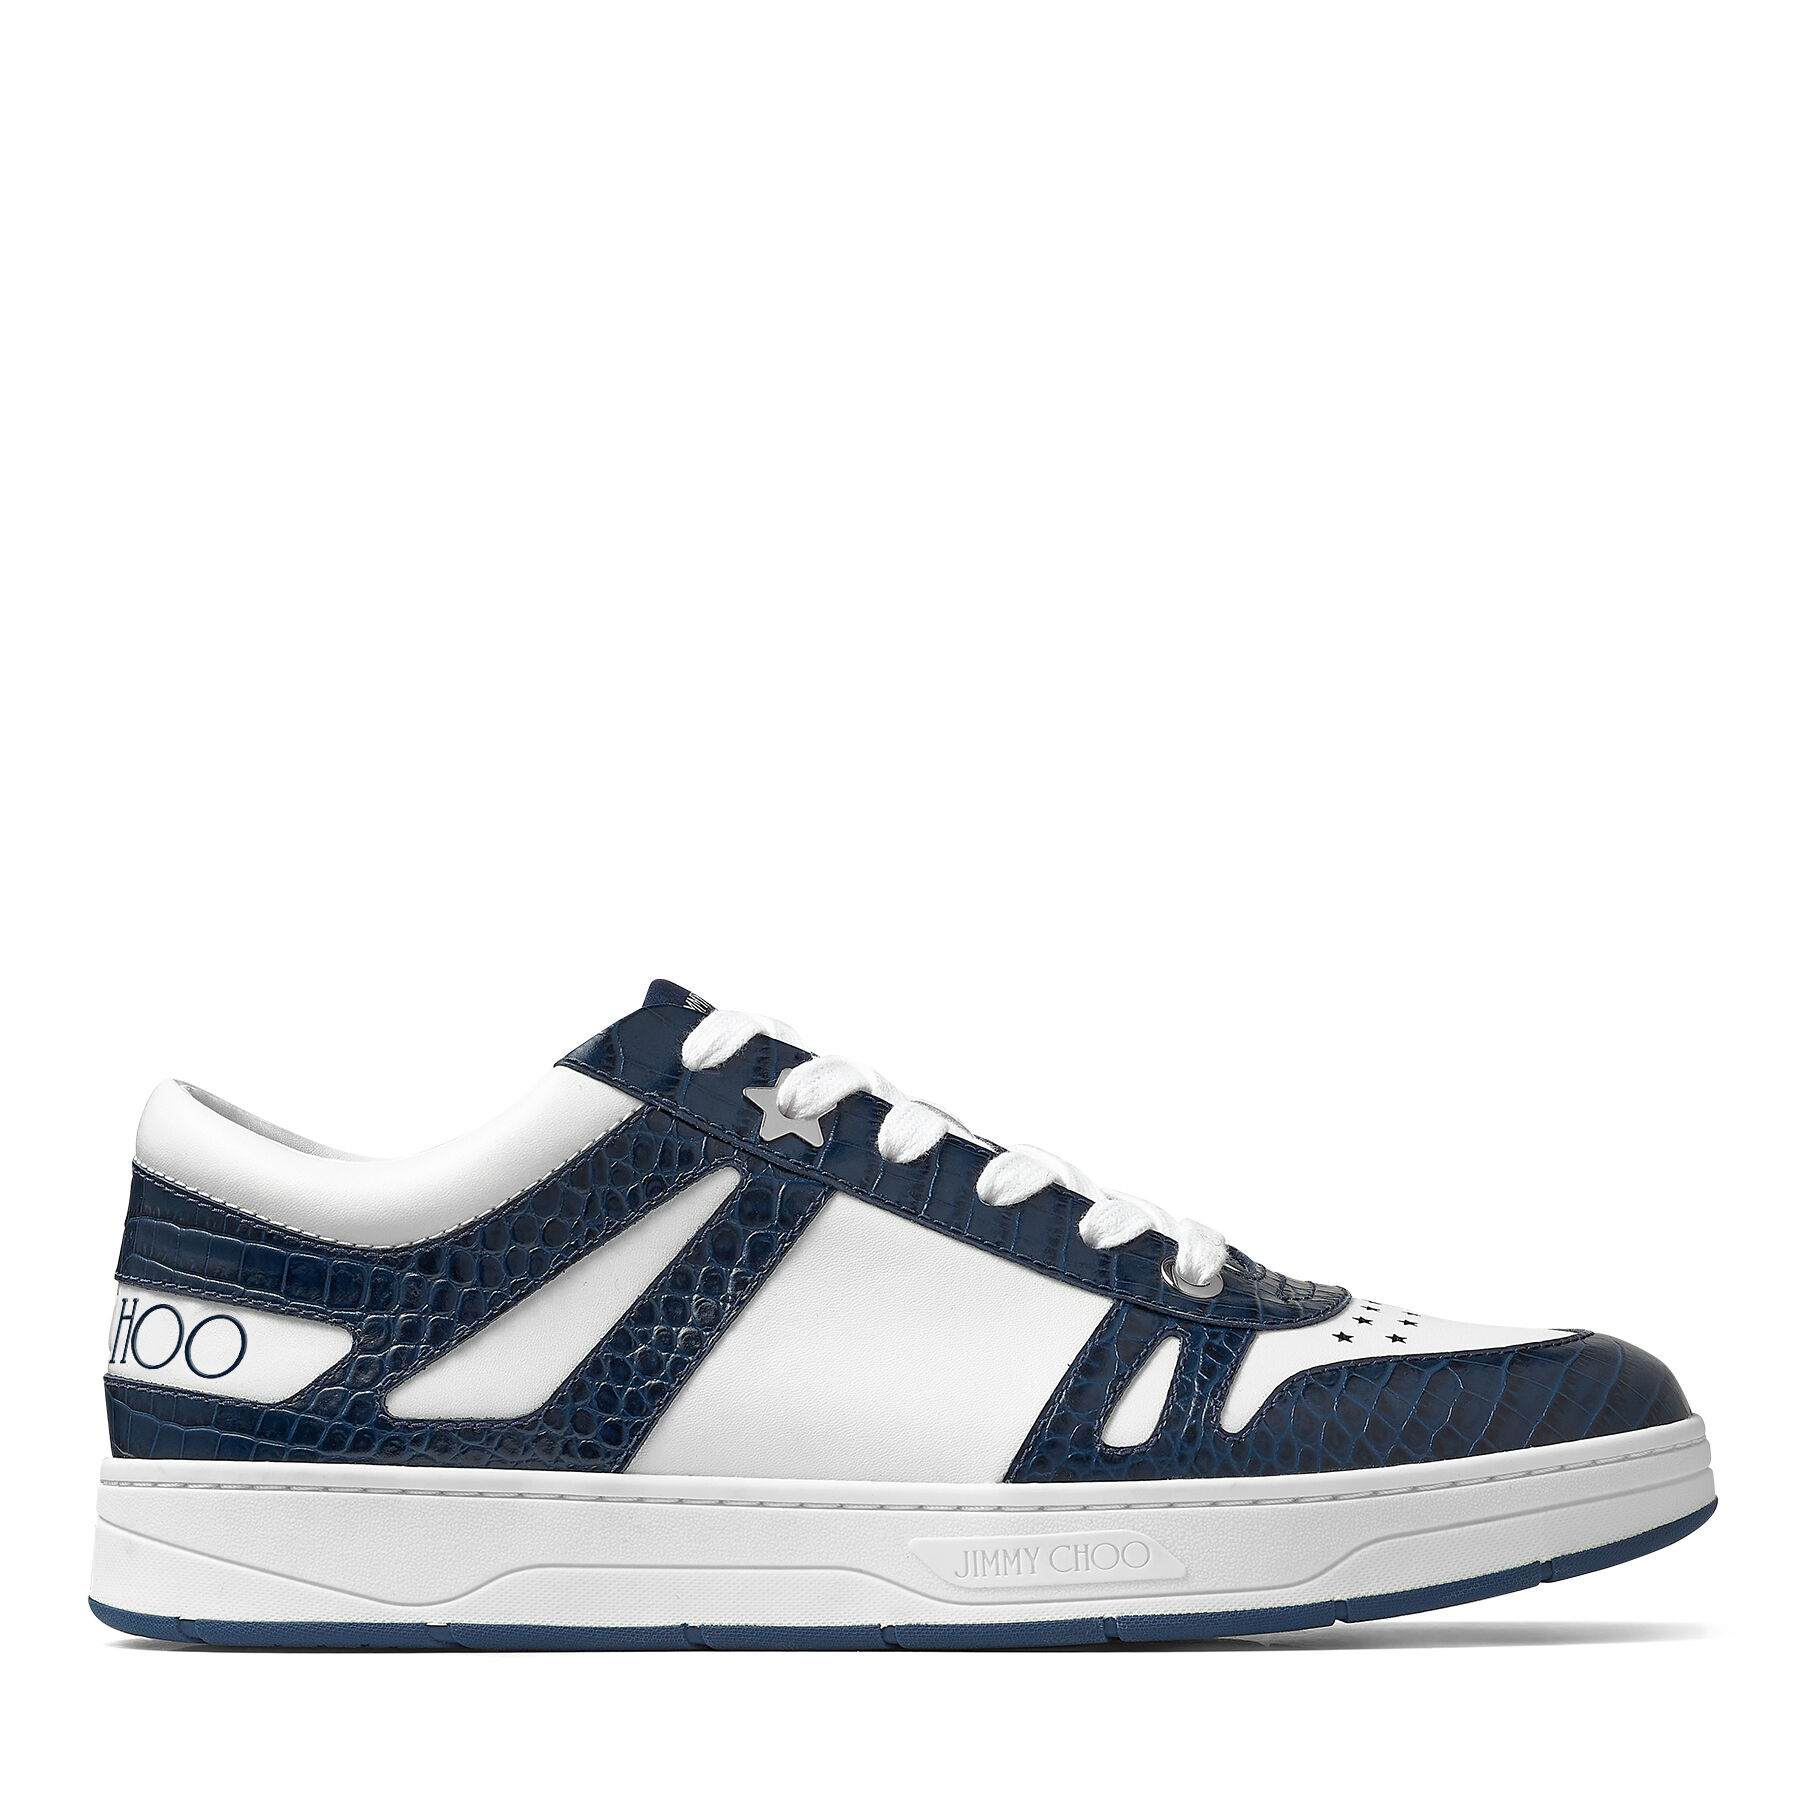 HAWAII/M - Marine Croc-Embossed Leather and White Calf Leather Low Top Trainers